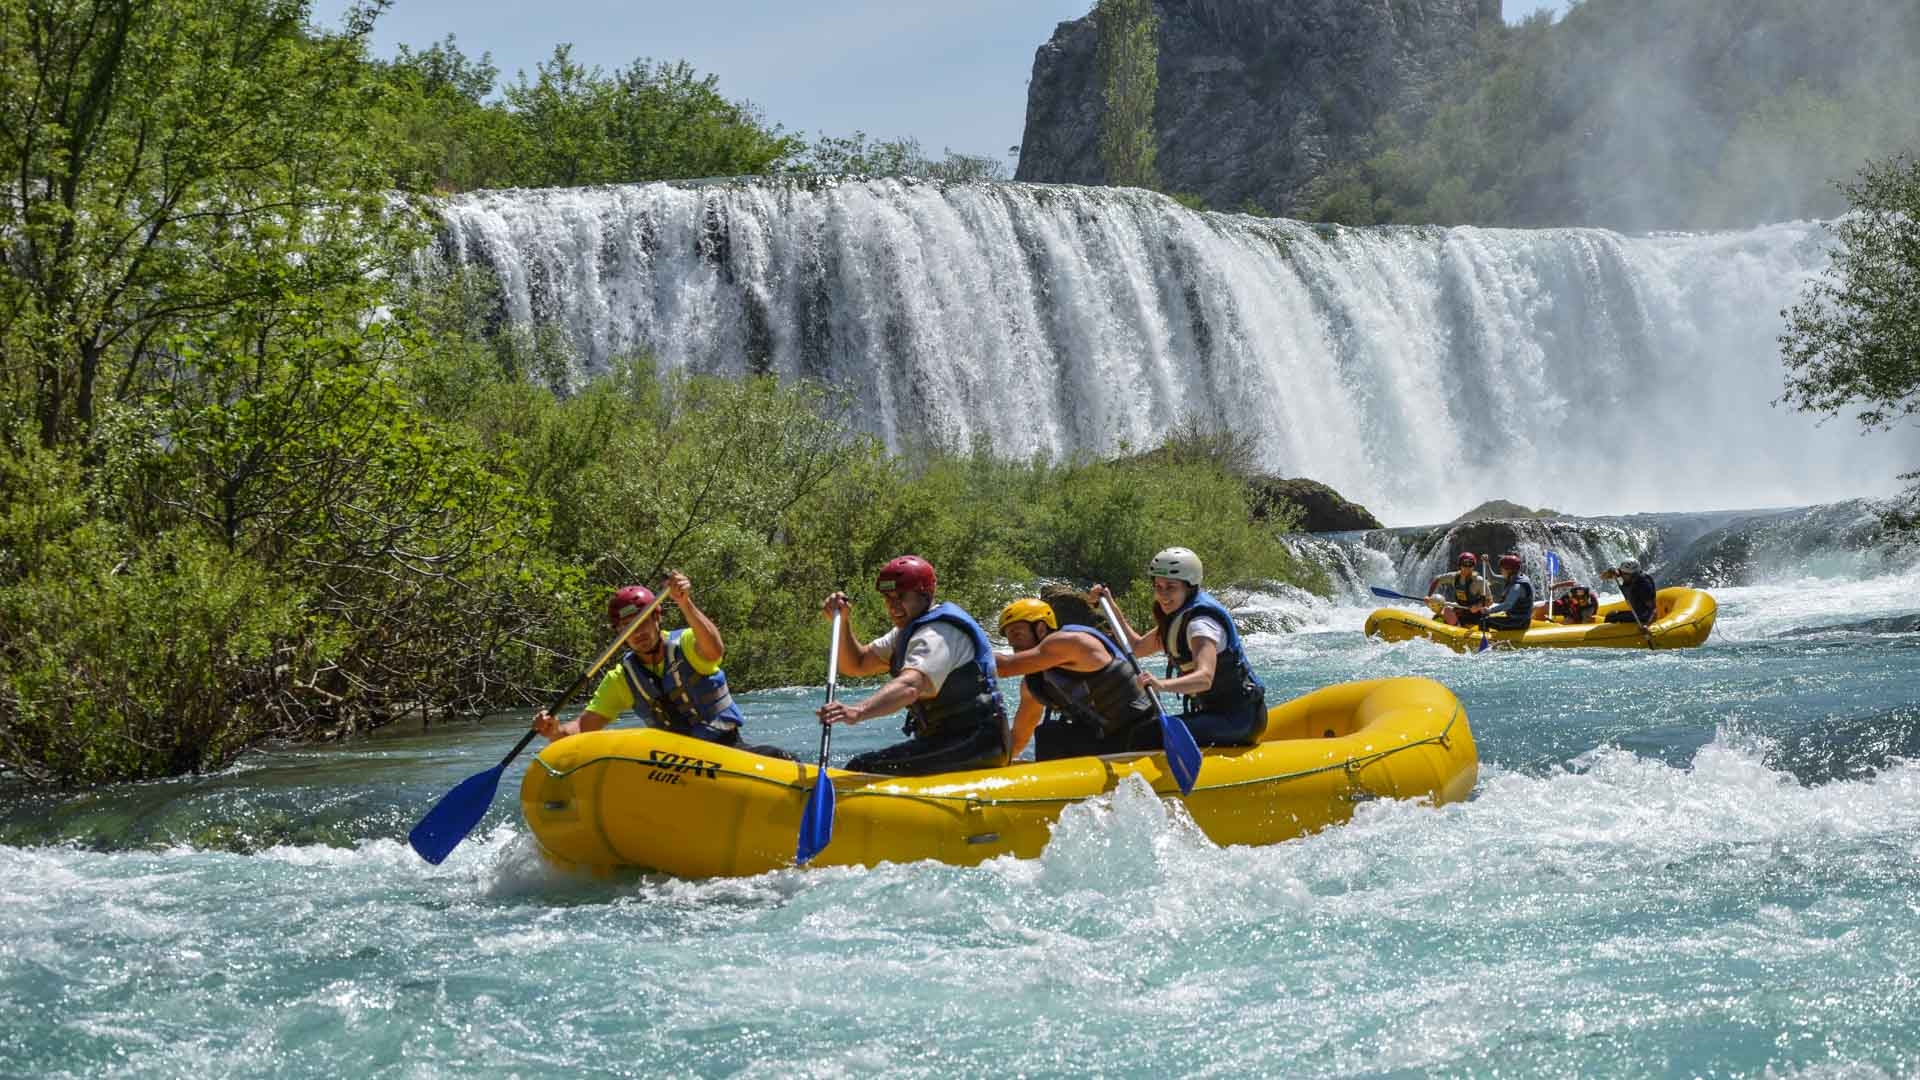 Zrmanja-river-rafting-Croatia-Raftrek-1-of-1-2